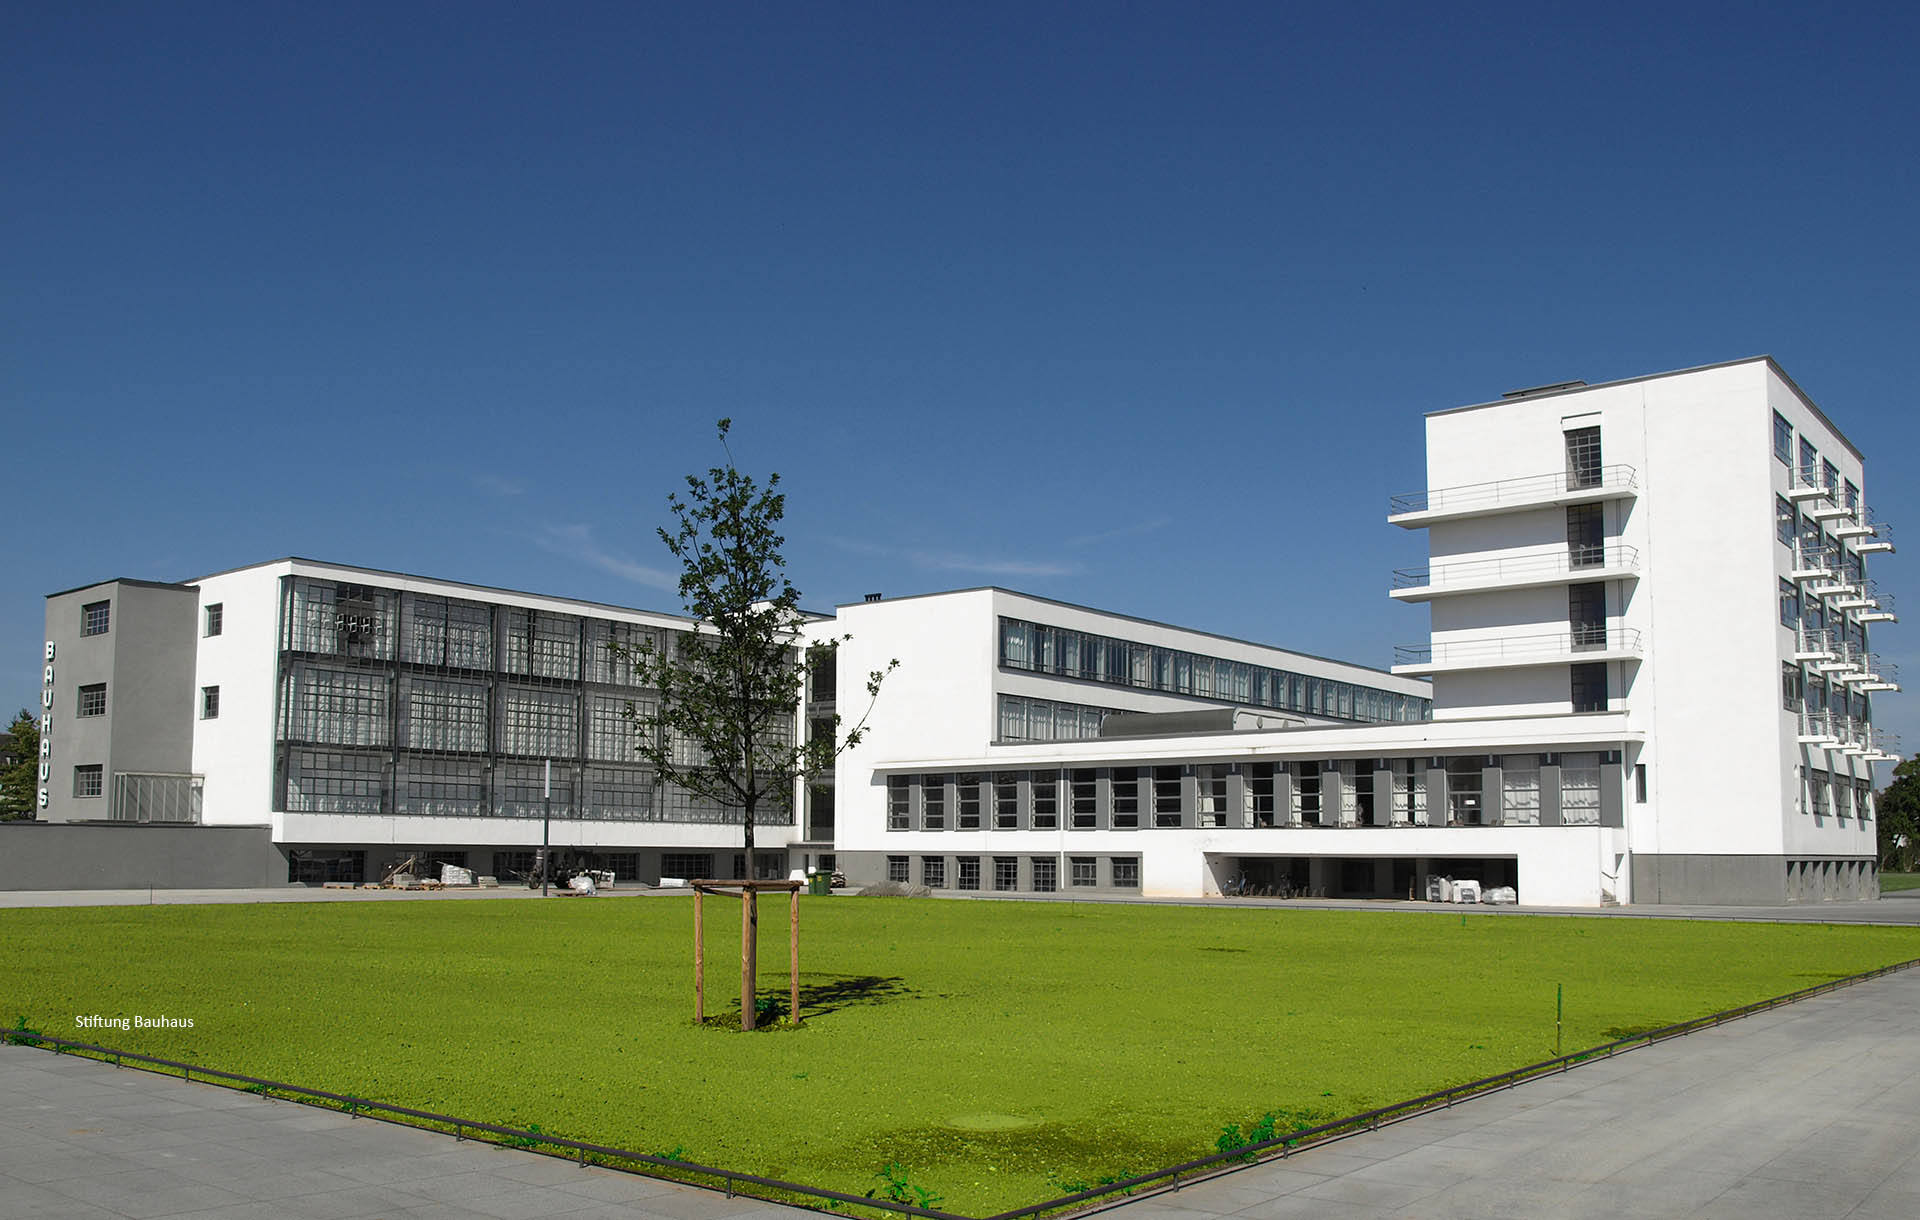 Bauhaus Dessau renovation with MHB classic-iso